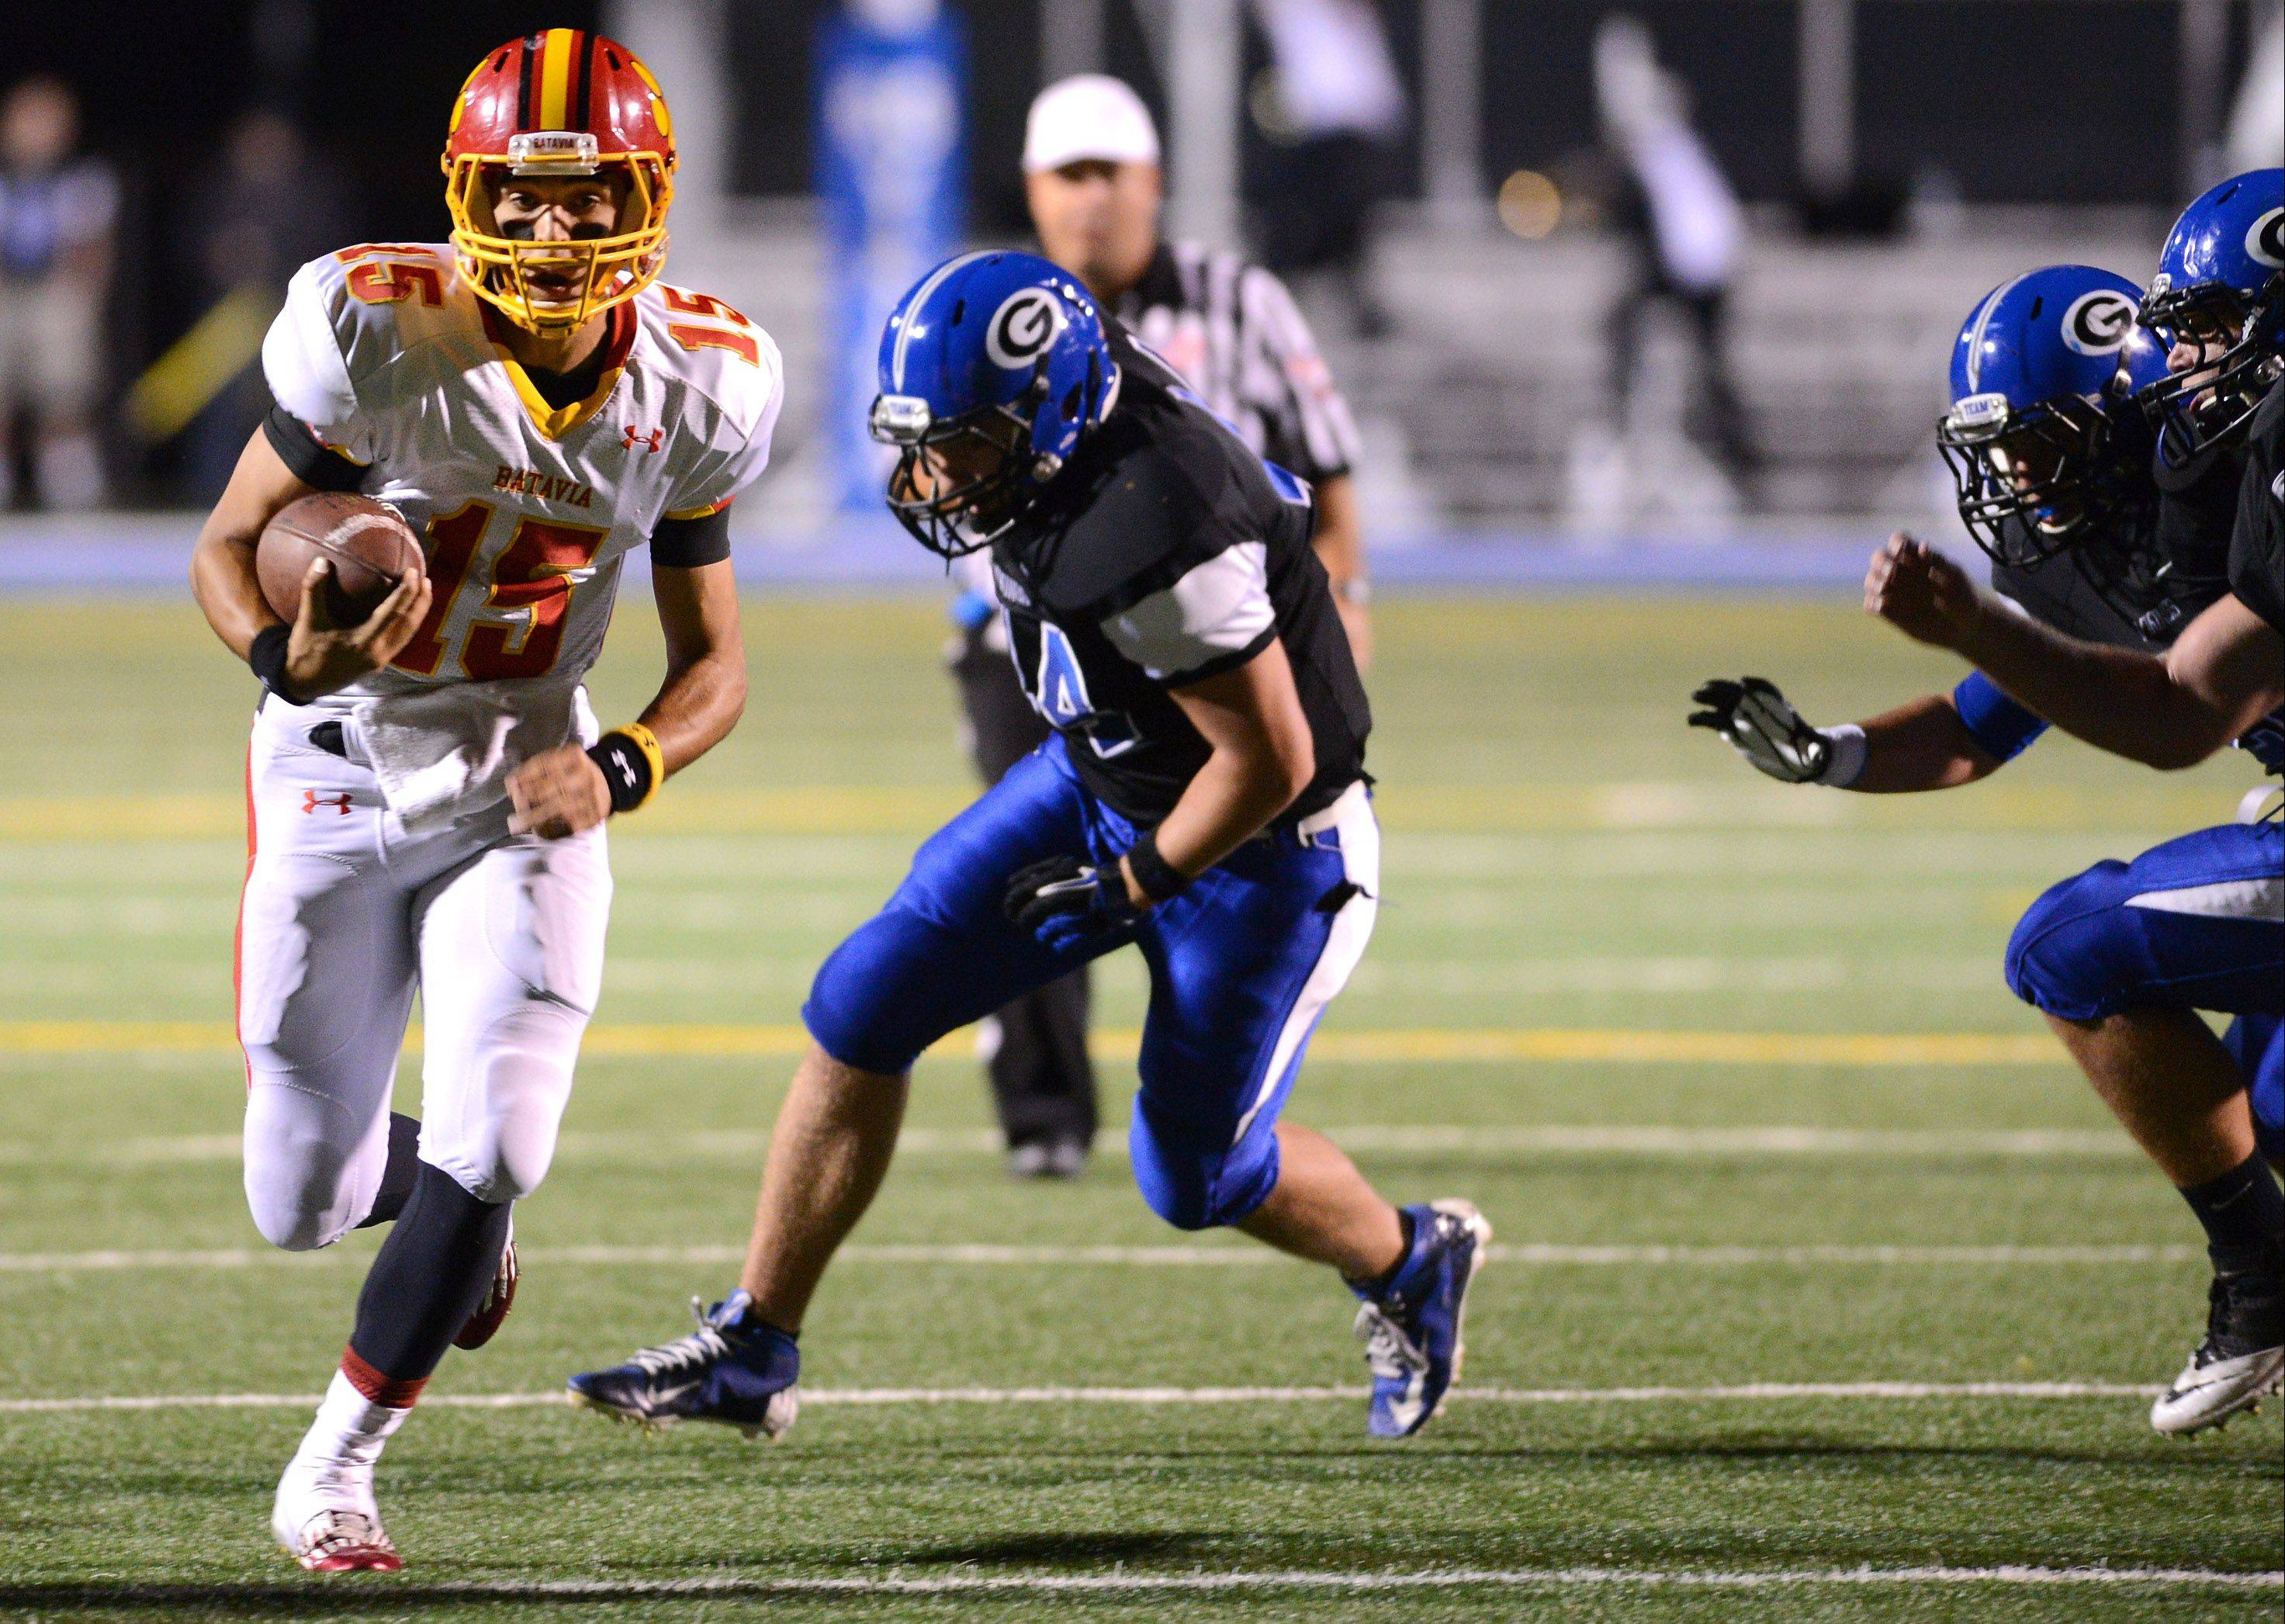 Batavia quarterback Micah Coffey and his teammates gave their fans plenty to cheer about including this play — one of Coffey's three rushing touchdowns Friday at Geneva.